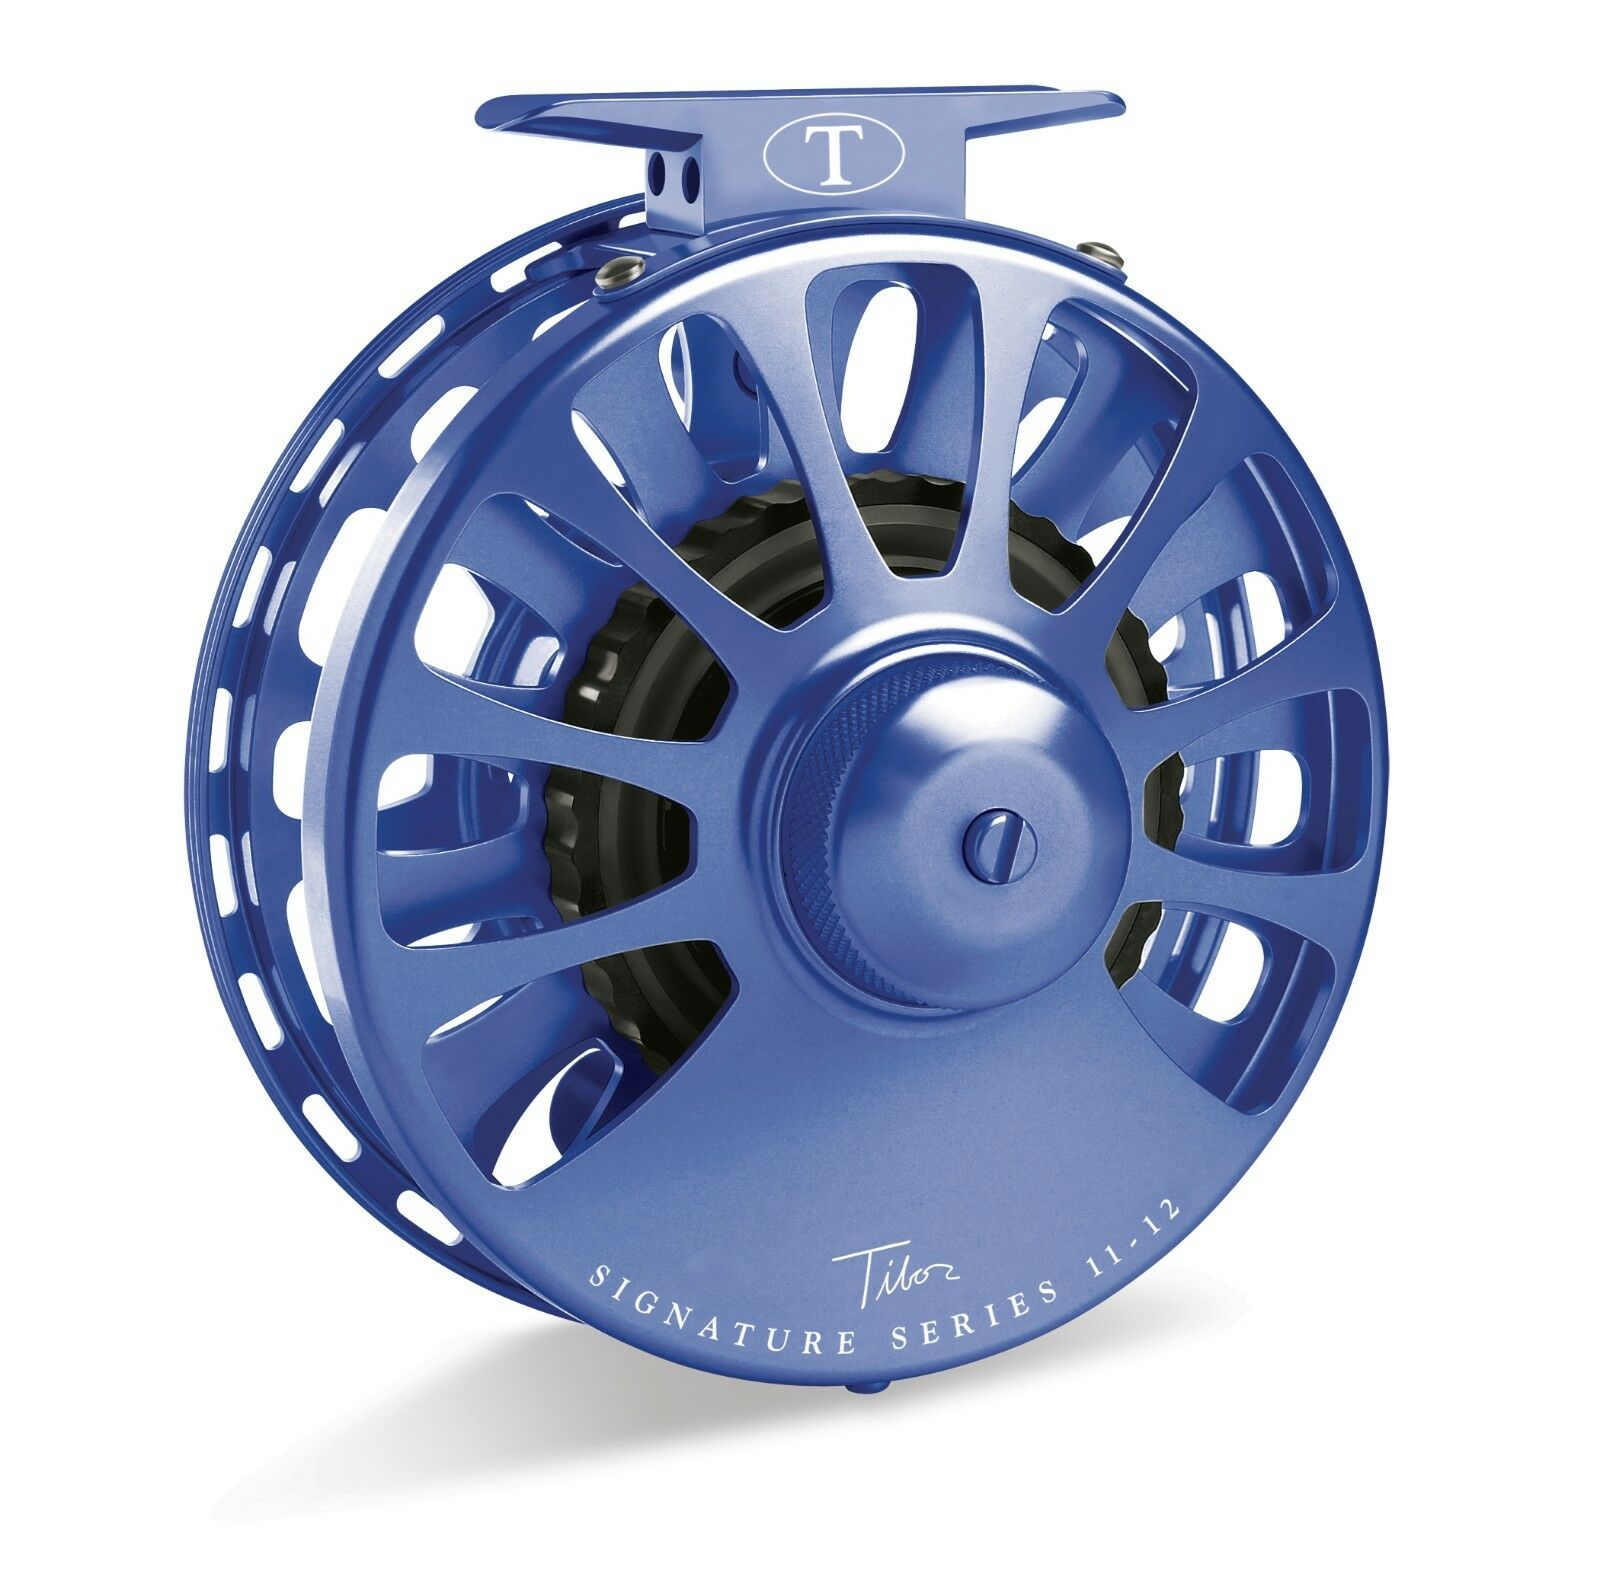 Tibor Signature Fly Reel, Size 5 6, Royal bluee, NEW   FREE FLY LINE